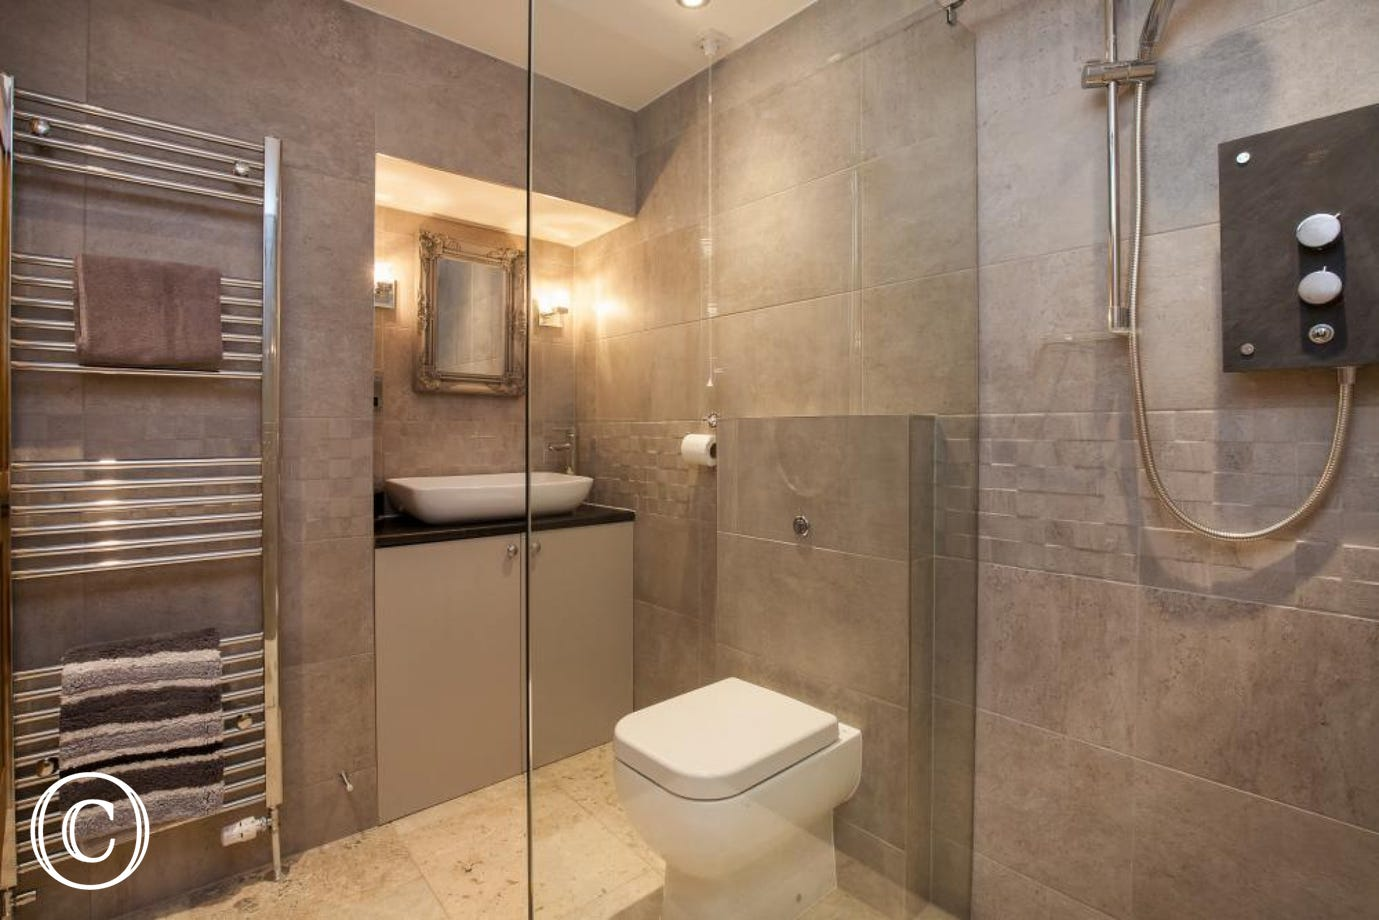 Ground floor shower room with glass walk-in shower enclosure - total luxury!